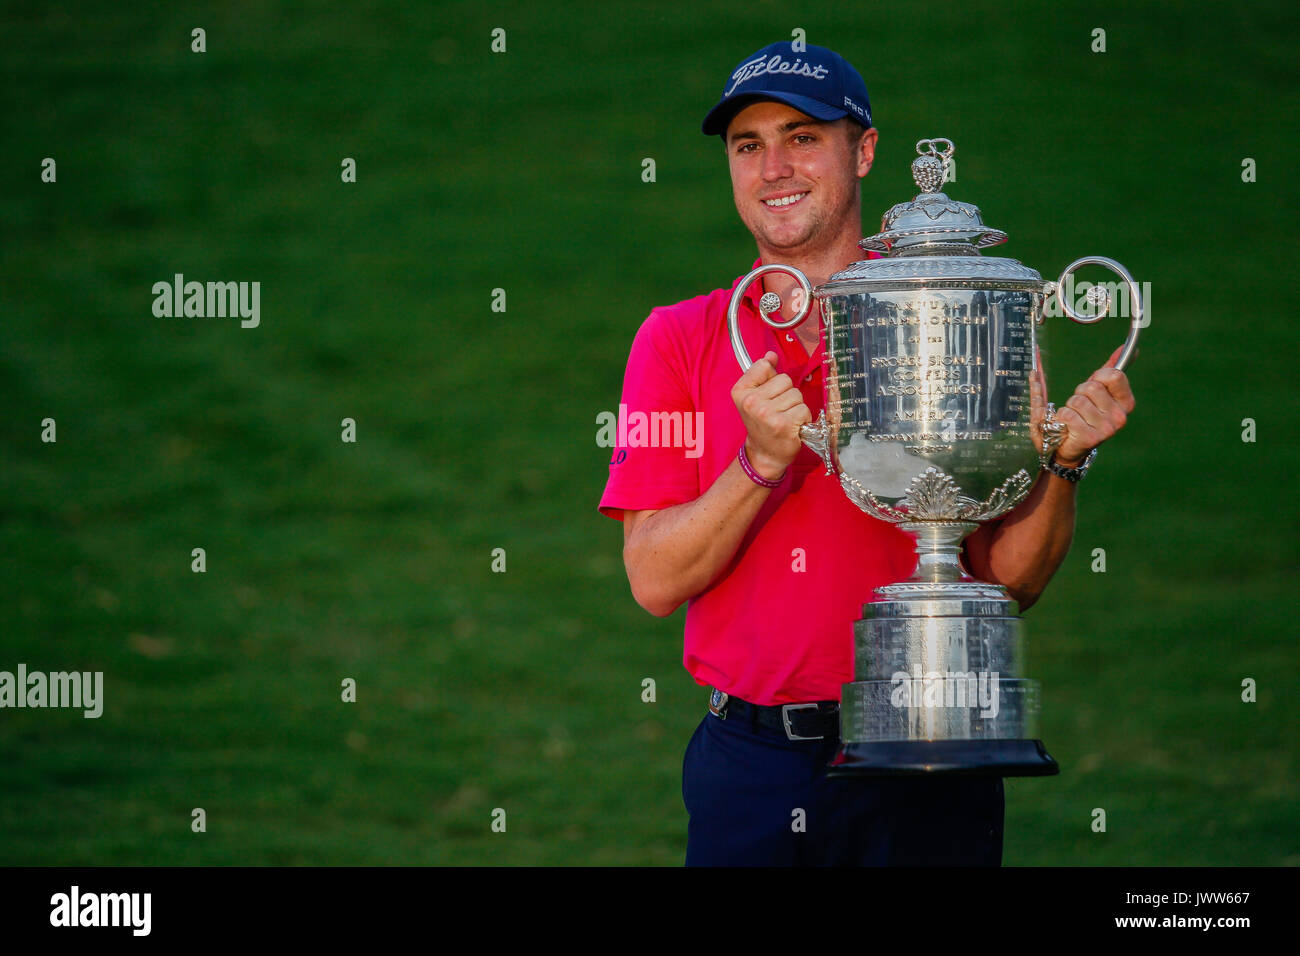 Charlotte, North Carolina, USA. 13th Aug, 2017. Justin Thomas hosts the Wannamaker Trophy on the 18th green to finish - Stock Image